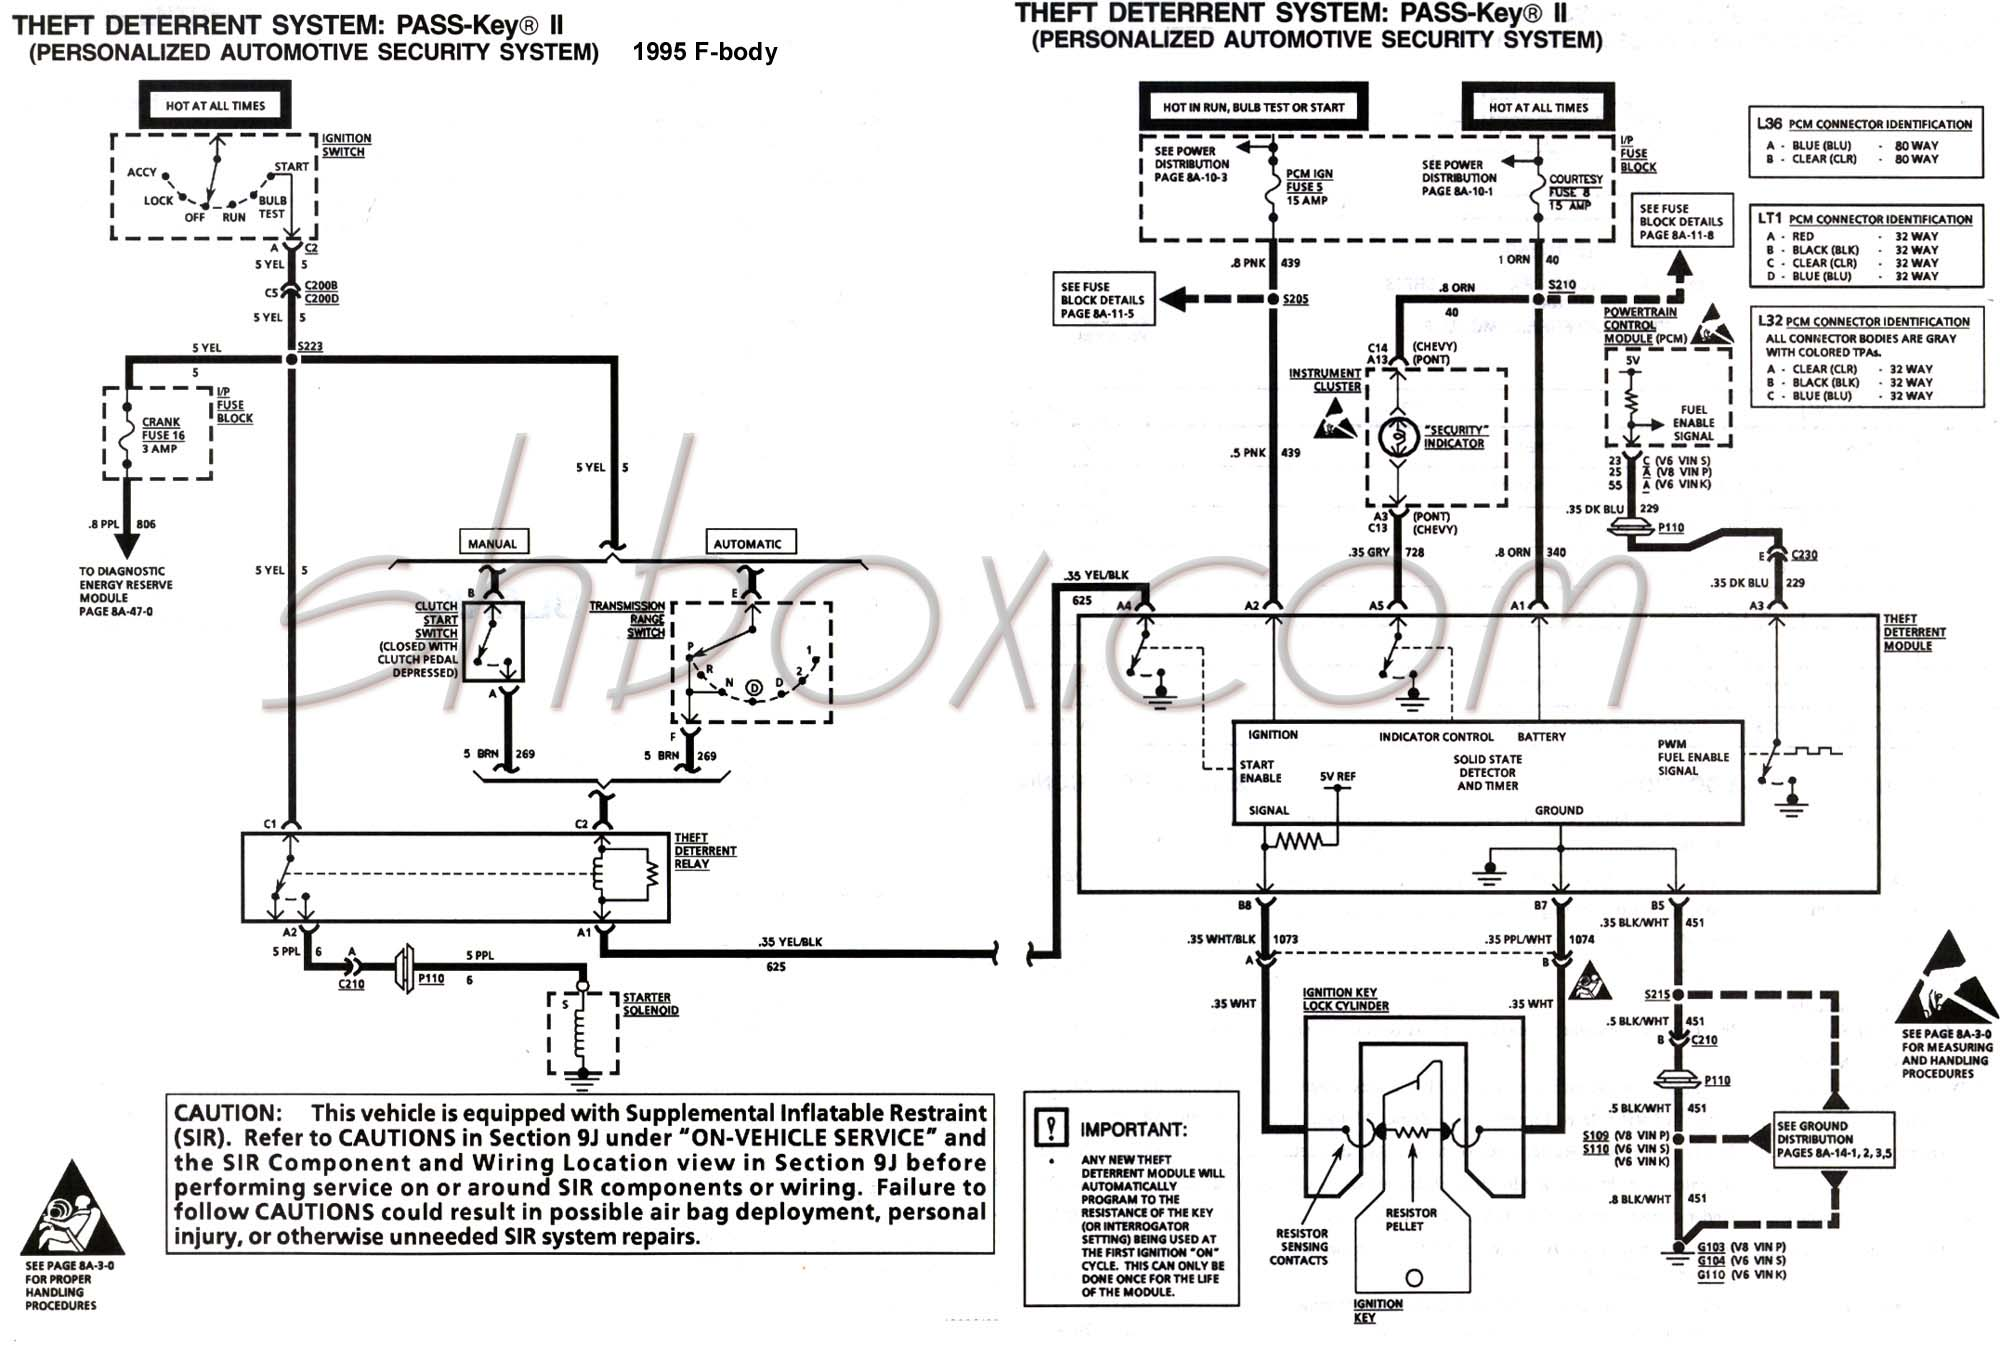 Chevy Cavalier Anti Theft Wiring Diagram Chevy Cavalier